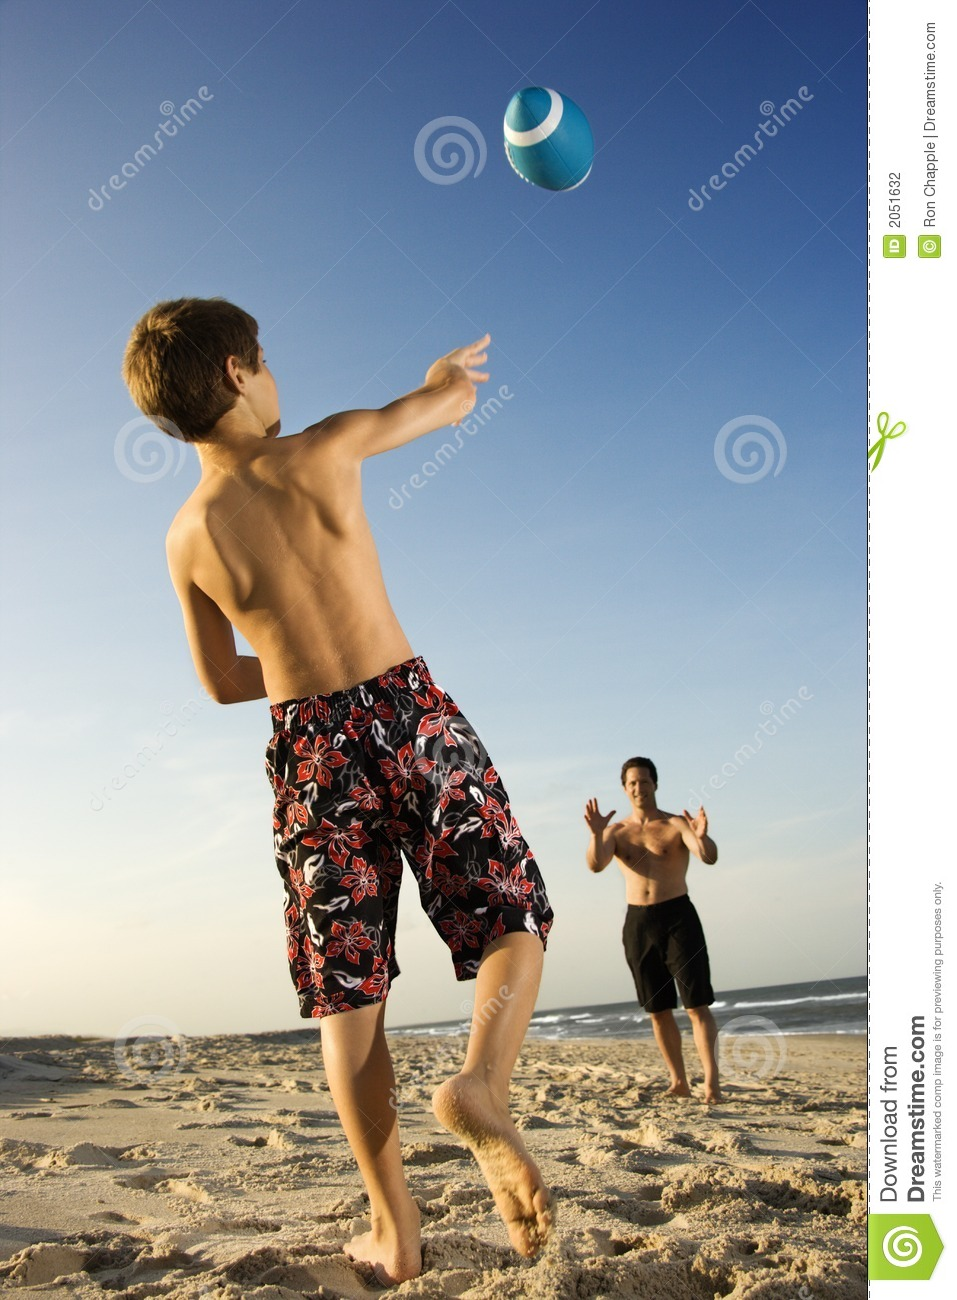 Boy Throwing Football Stock Photo Image Of Recreation -3946